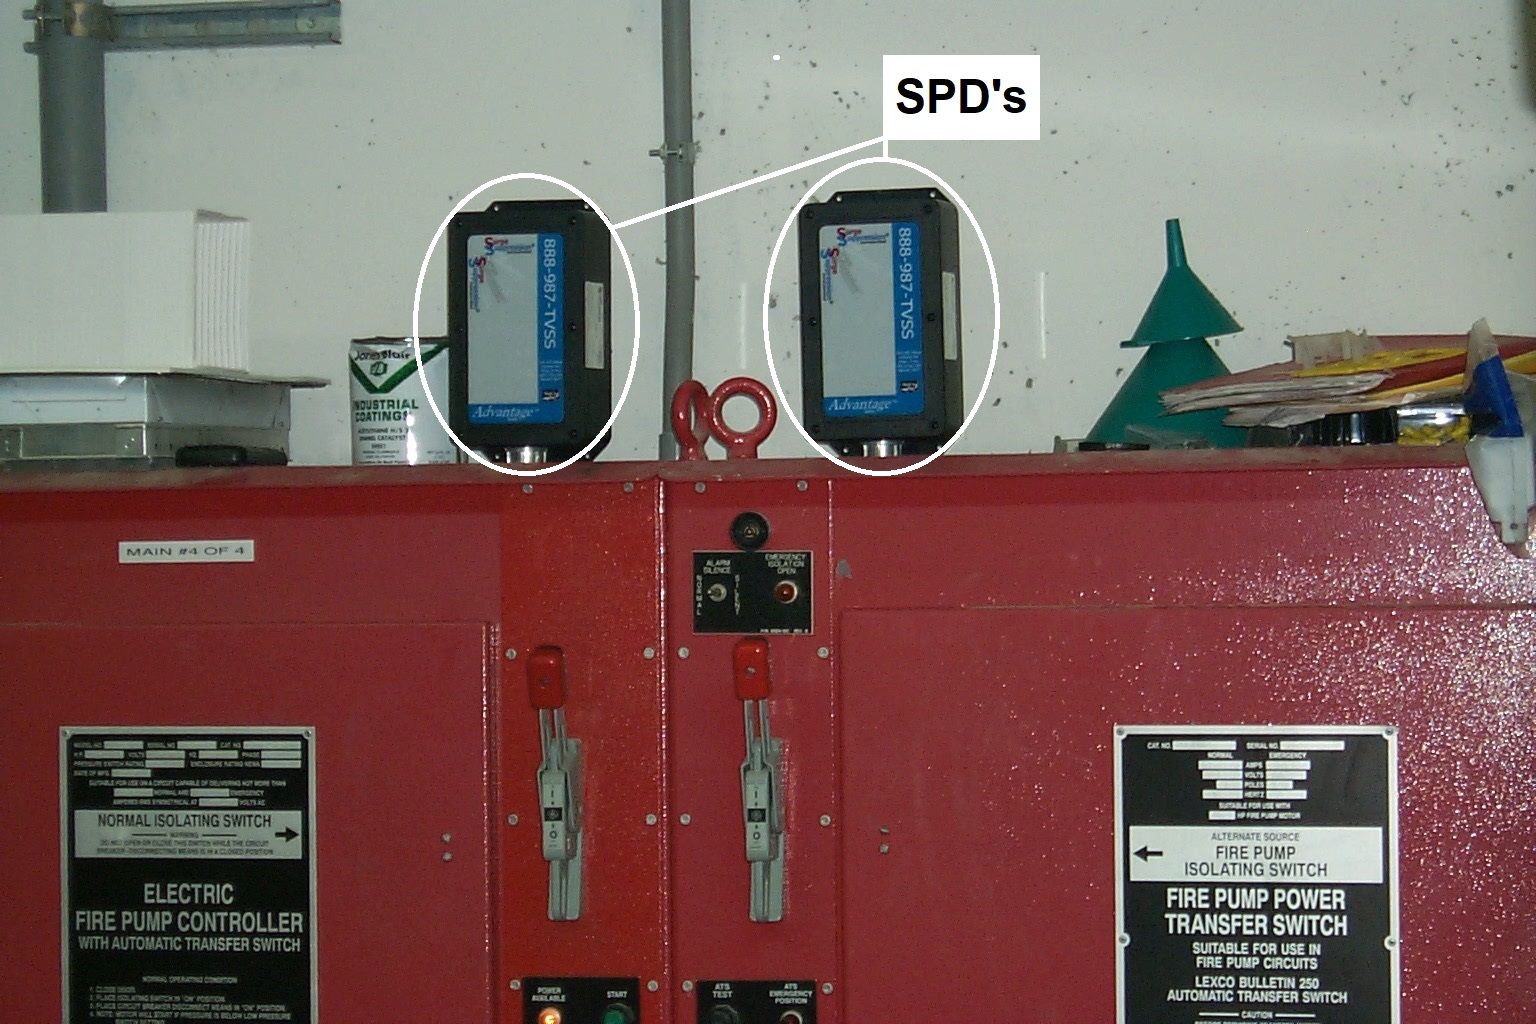 Fire Pump Controllers are sensitive and critical pieces of life-safety equipment that need to be protected with High Quality, High Performance SPD's. Get the Right Gear!